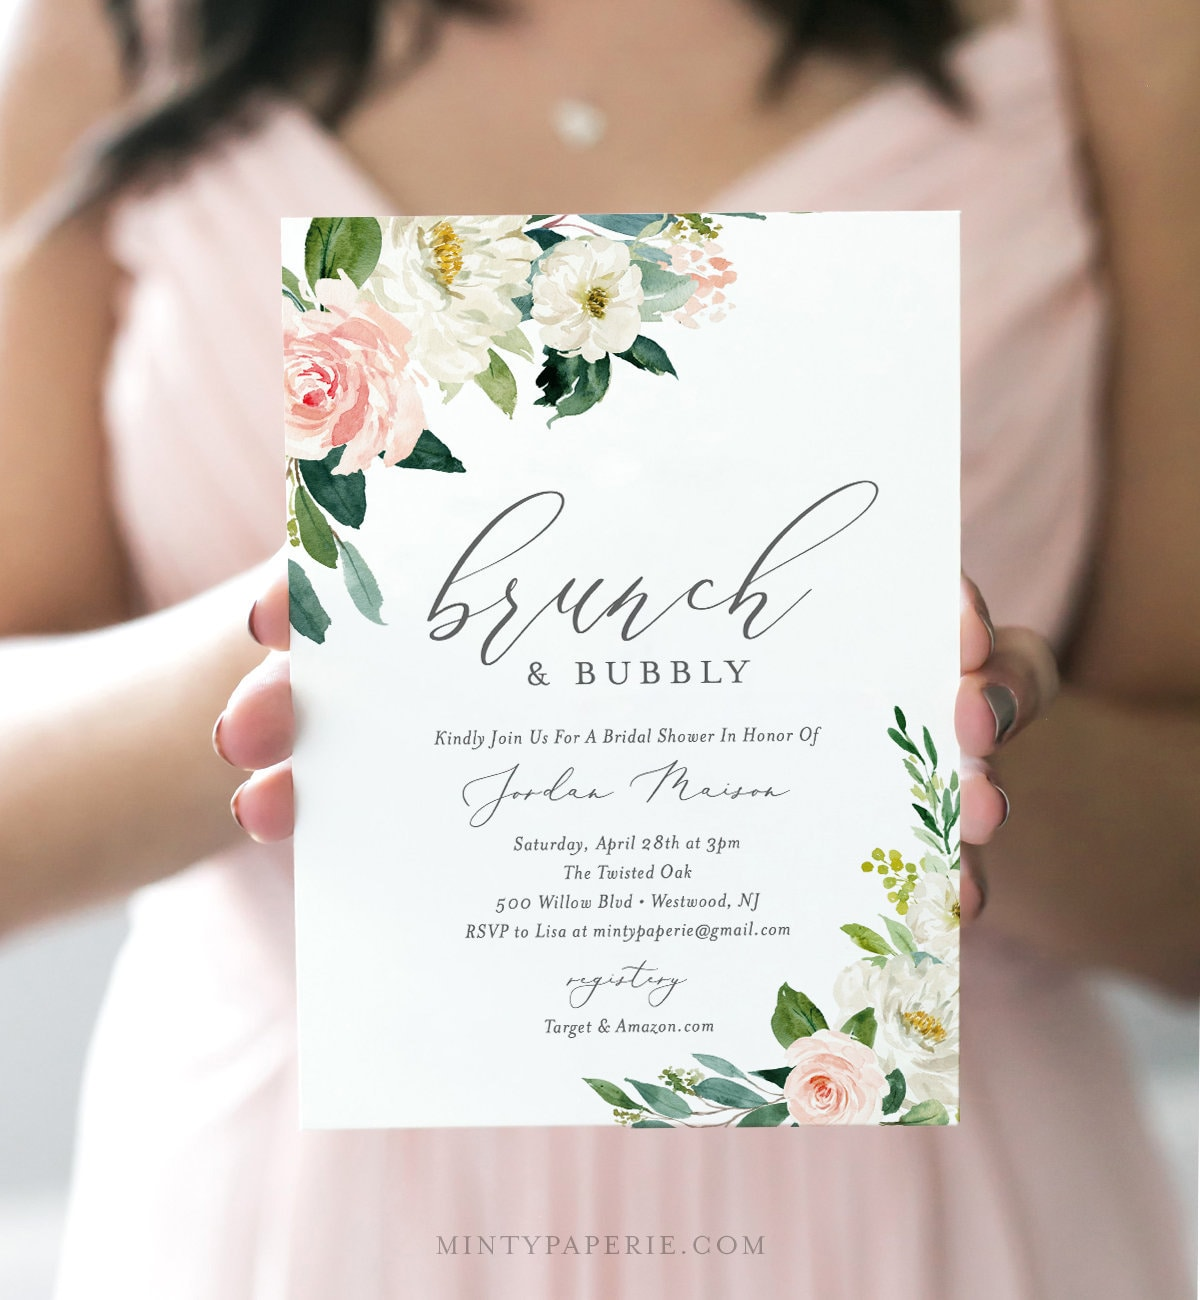 Brunch and Bubbly Bridal Shower Invitation Template, INSTANT ...